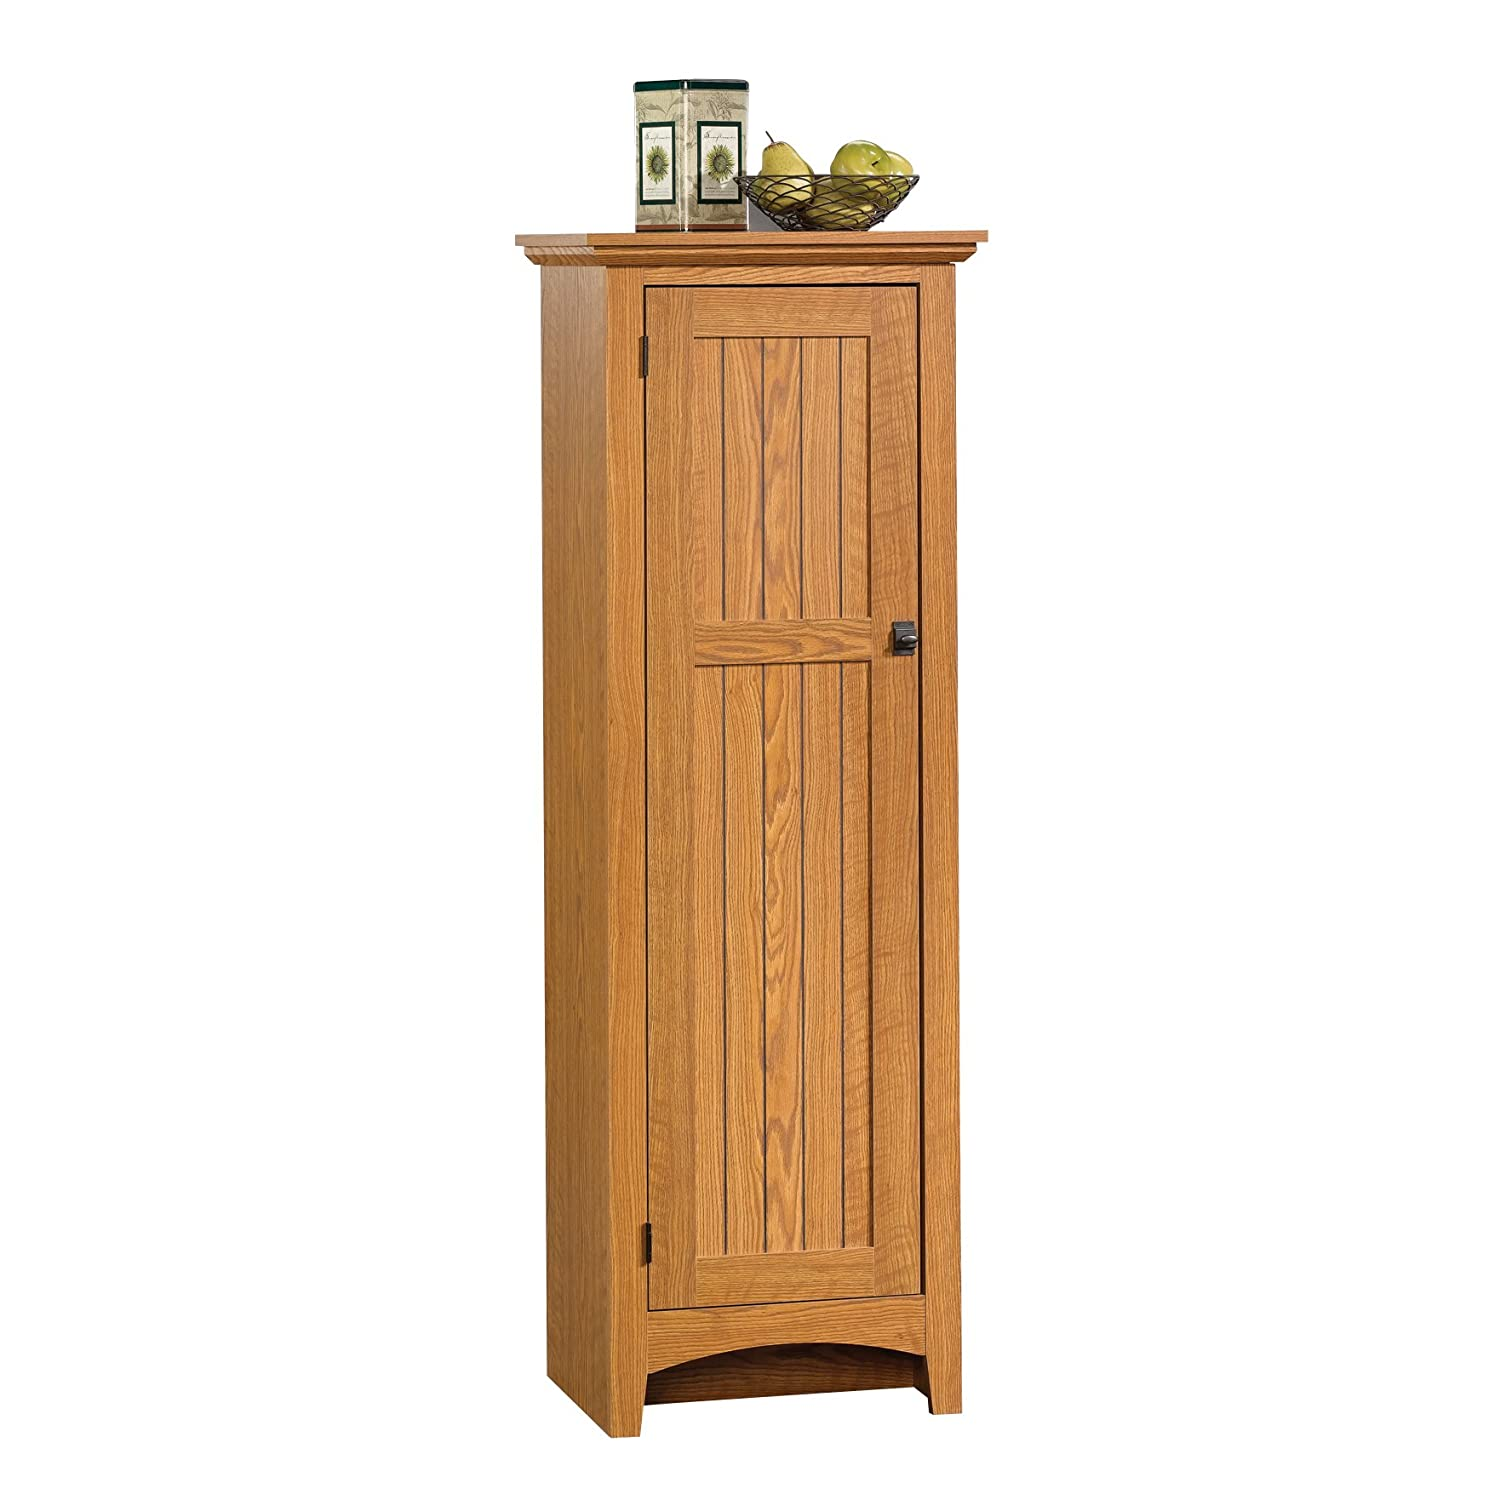 Sauder Summer Home Pantry, Carolina Oak Finish 401867